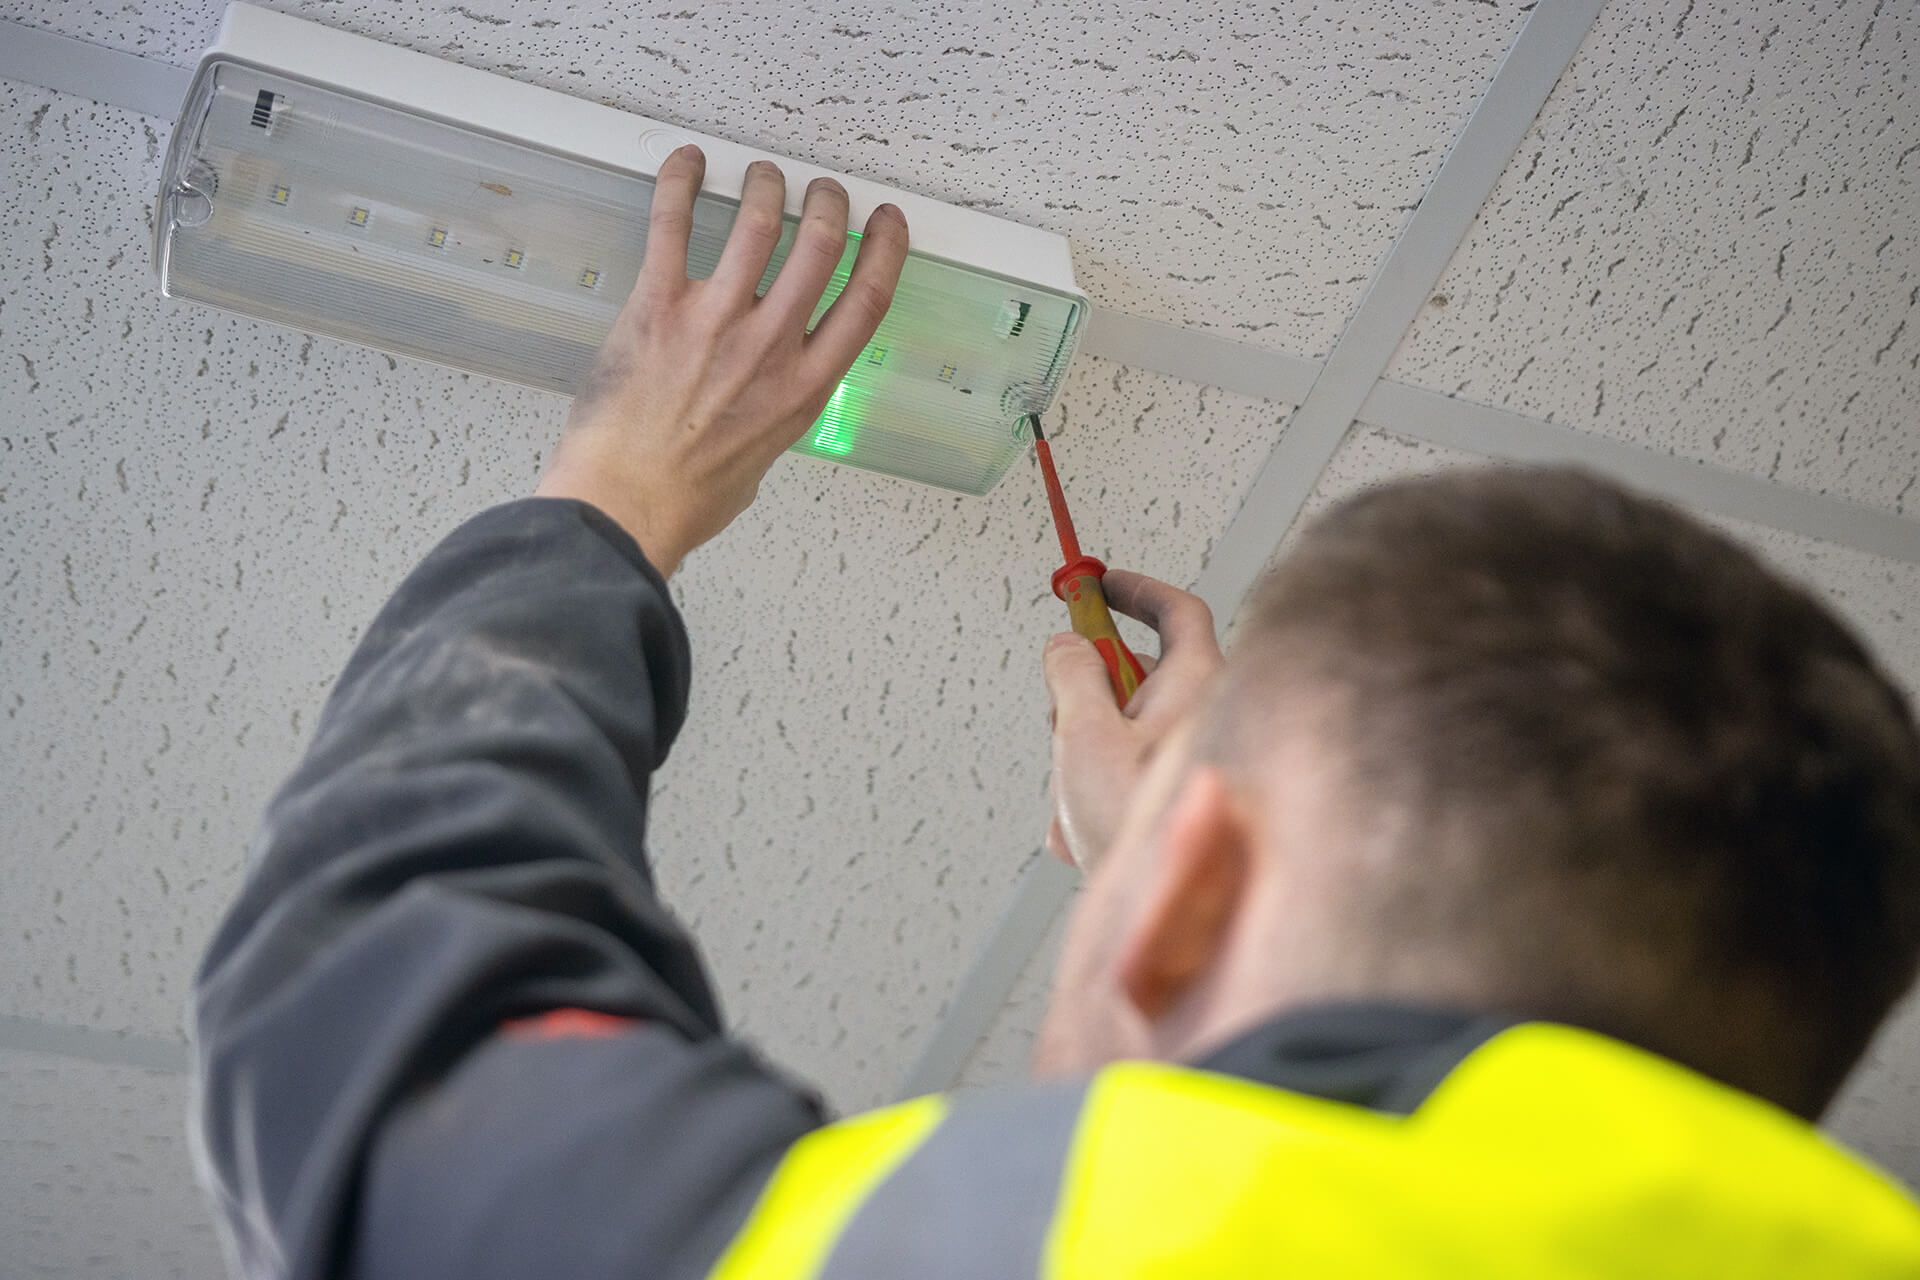 Home Office announces unlimited fines for fire safety breaches